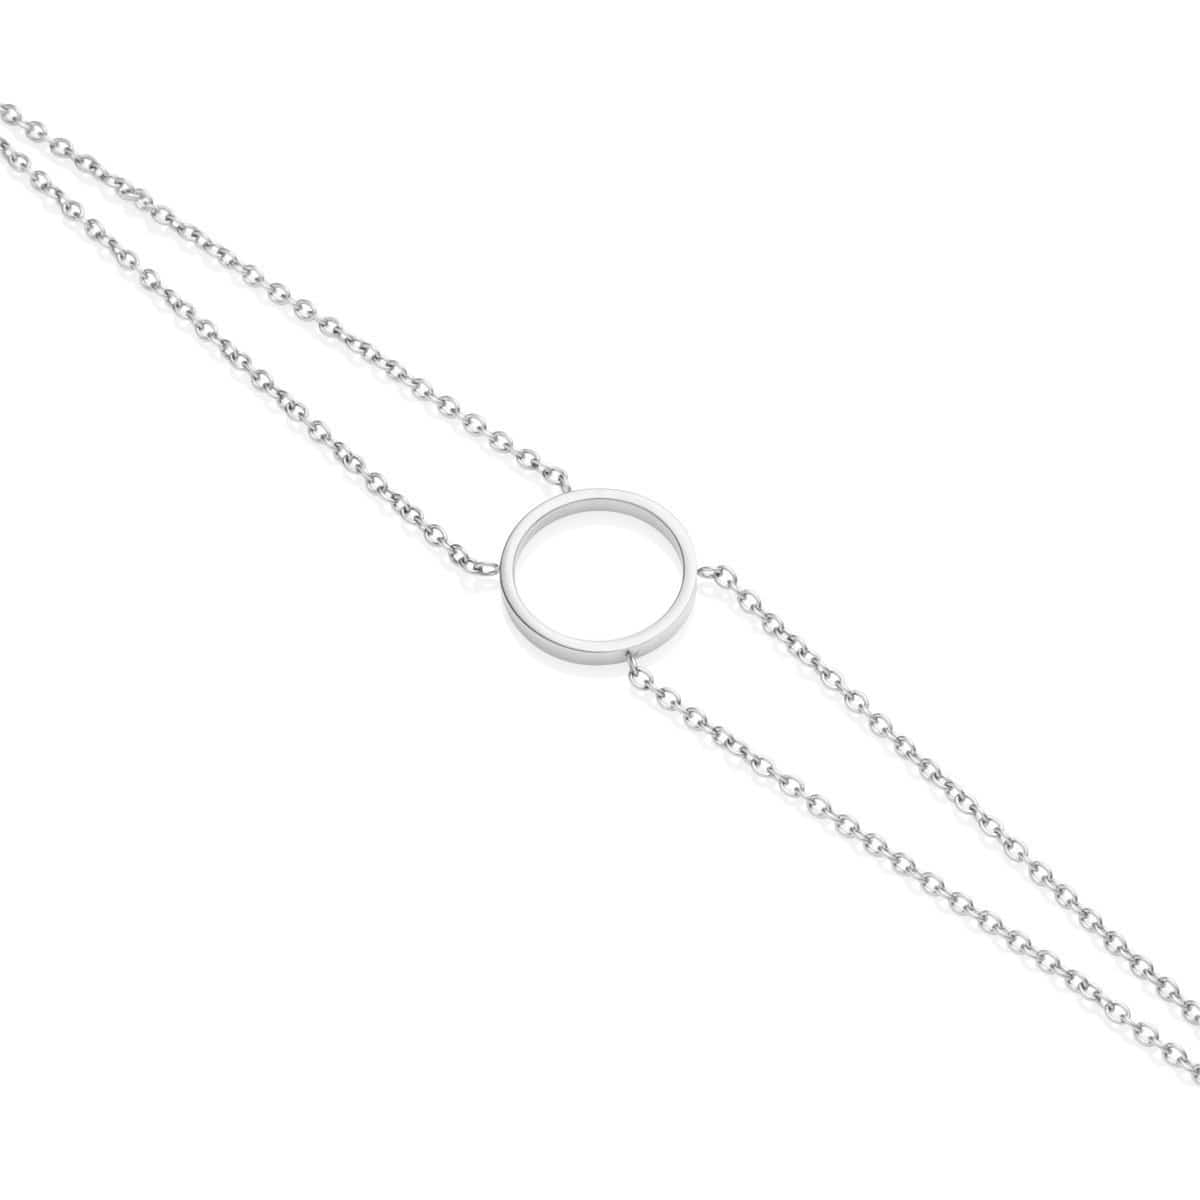 Little Luxe Eclipse Bracelet (Silver)